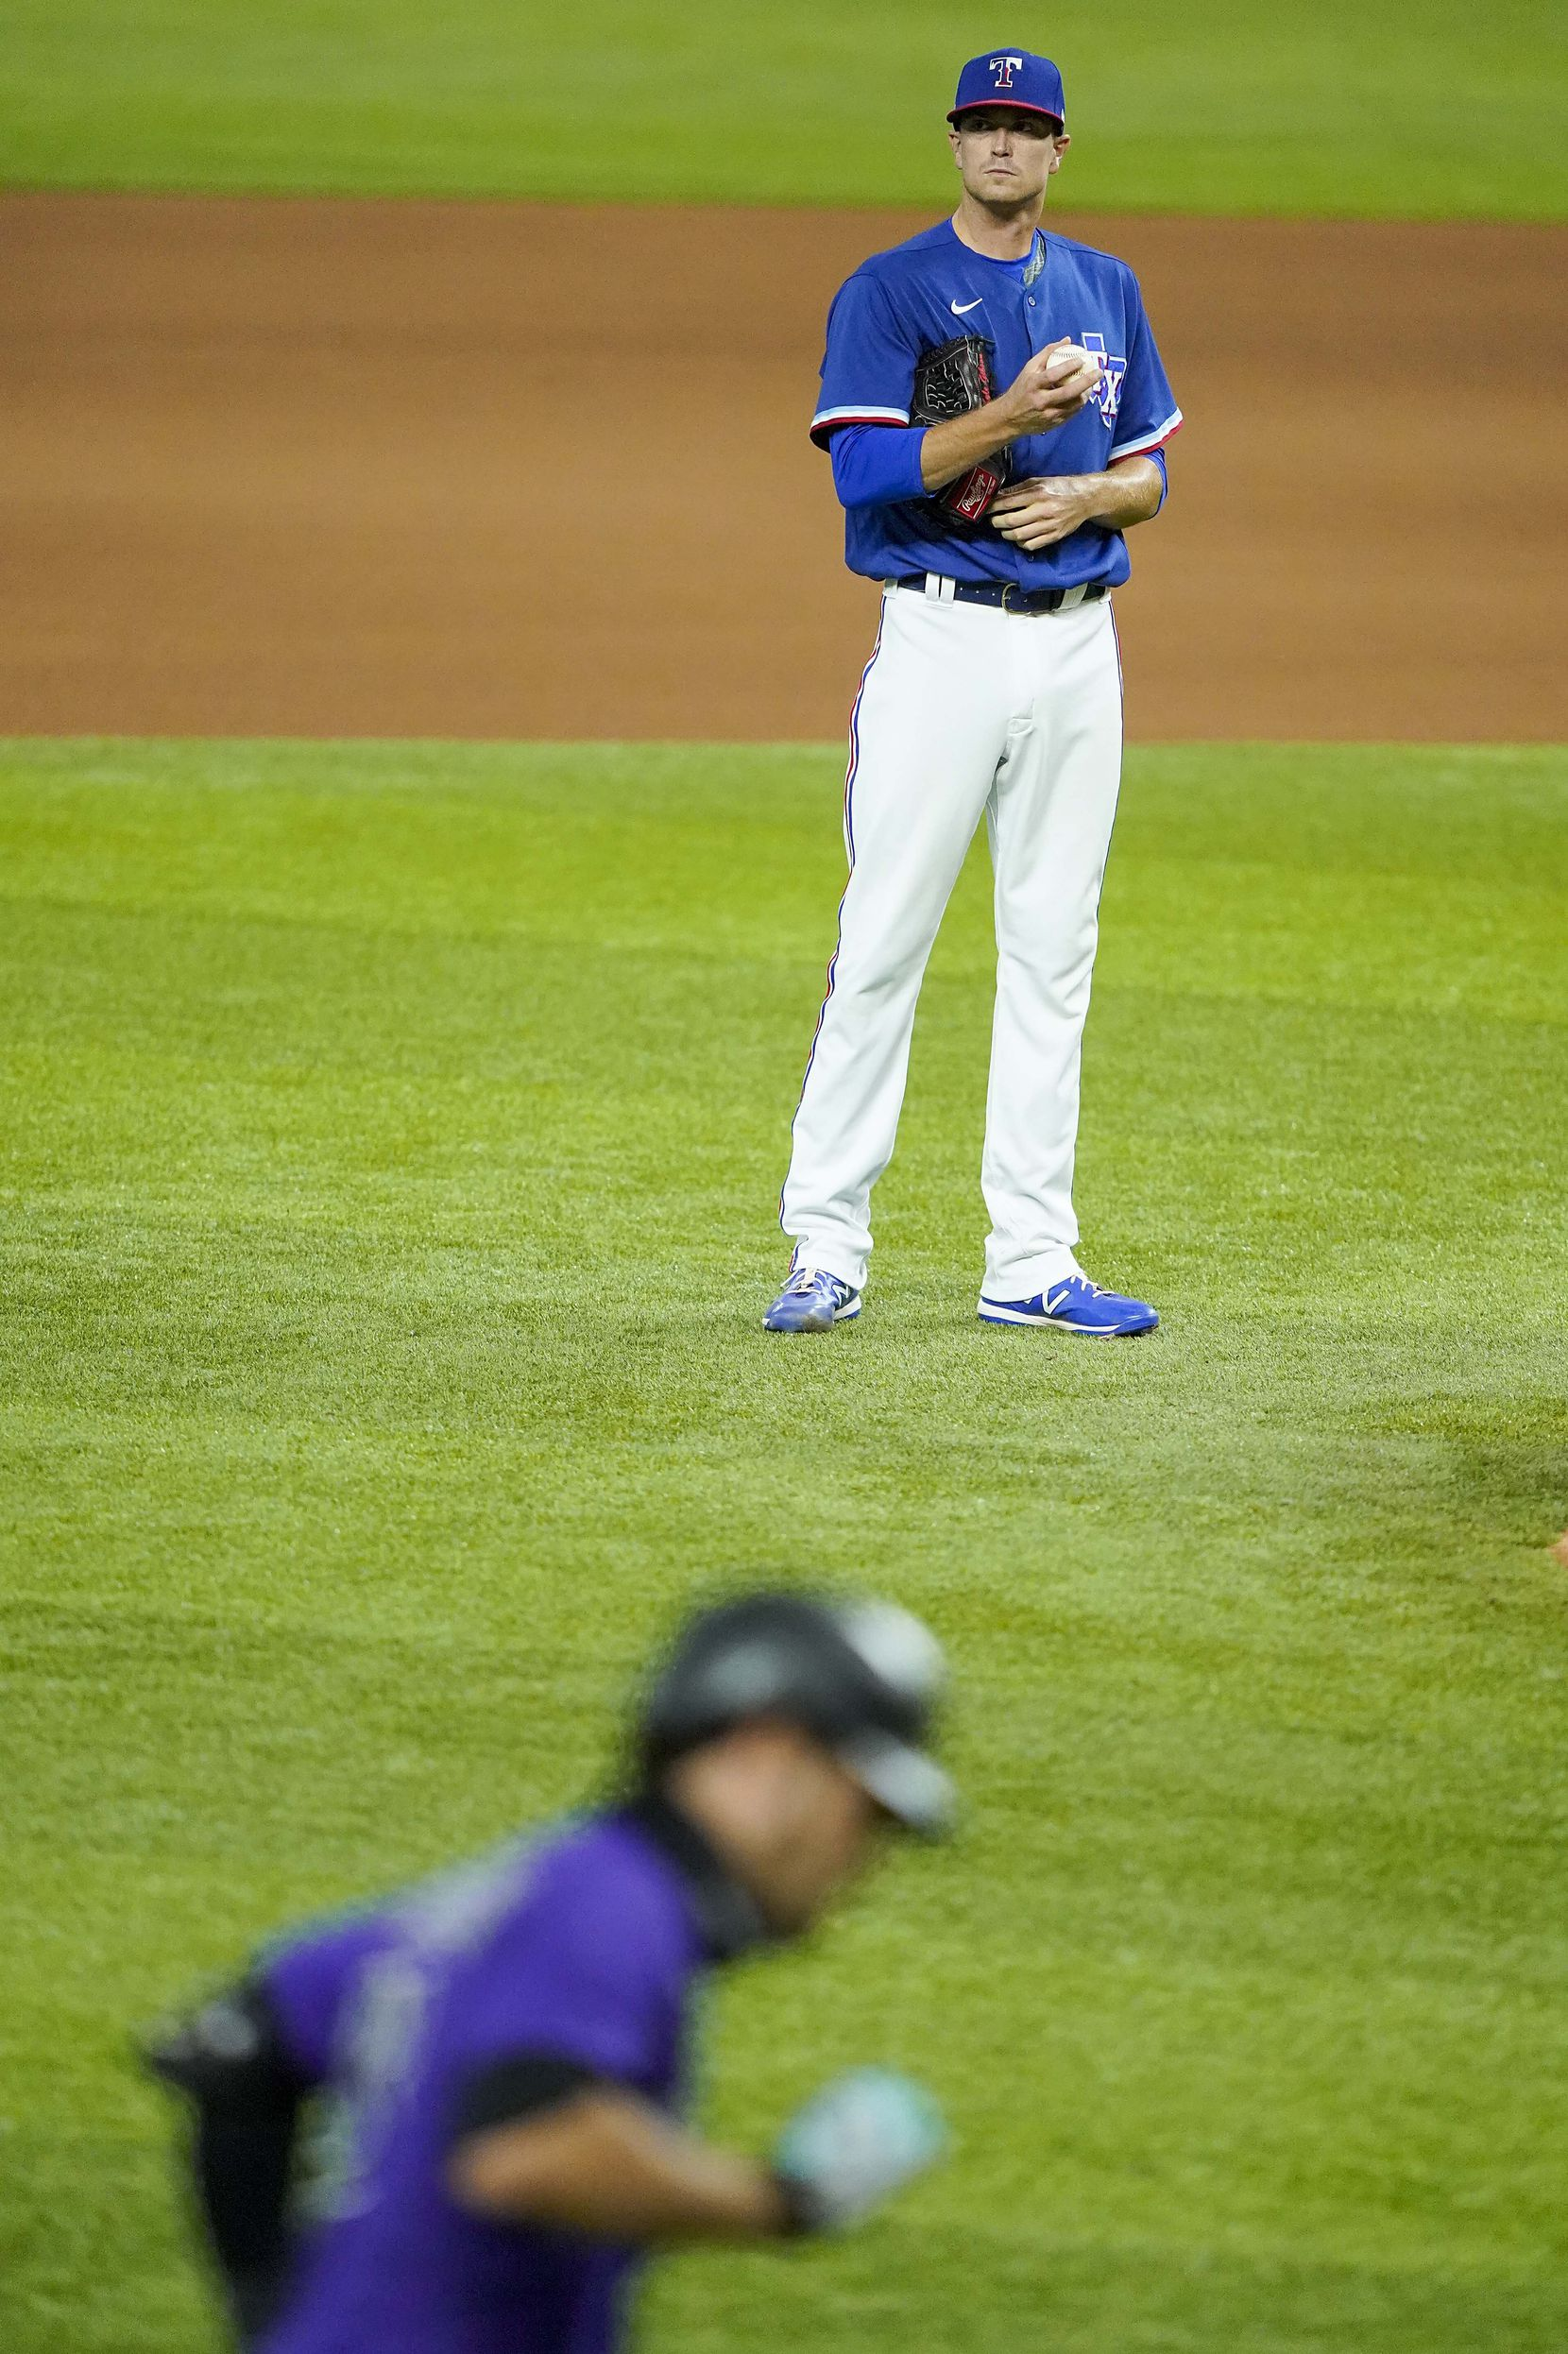 Texas Rangers pitcher Kyle Gibson watches Colorado Rockies third baseman Nolan Arenado round the bases after hitting a 2-run home run during the fourth inning of an exhibition game at Globe Life Field on Tuesday, July 21, 2020.